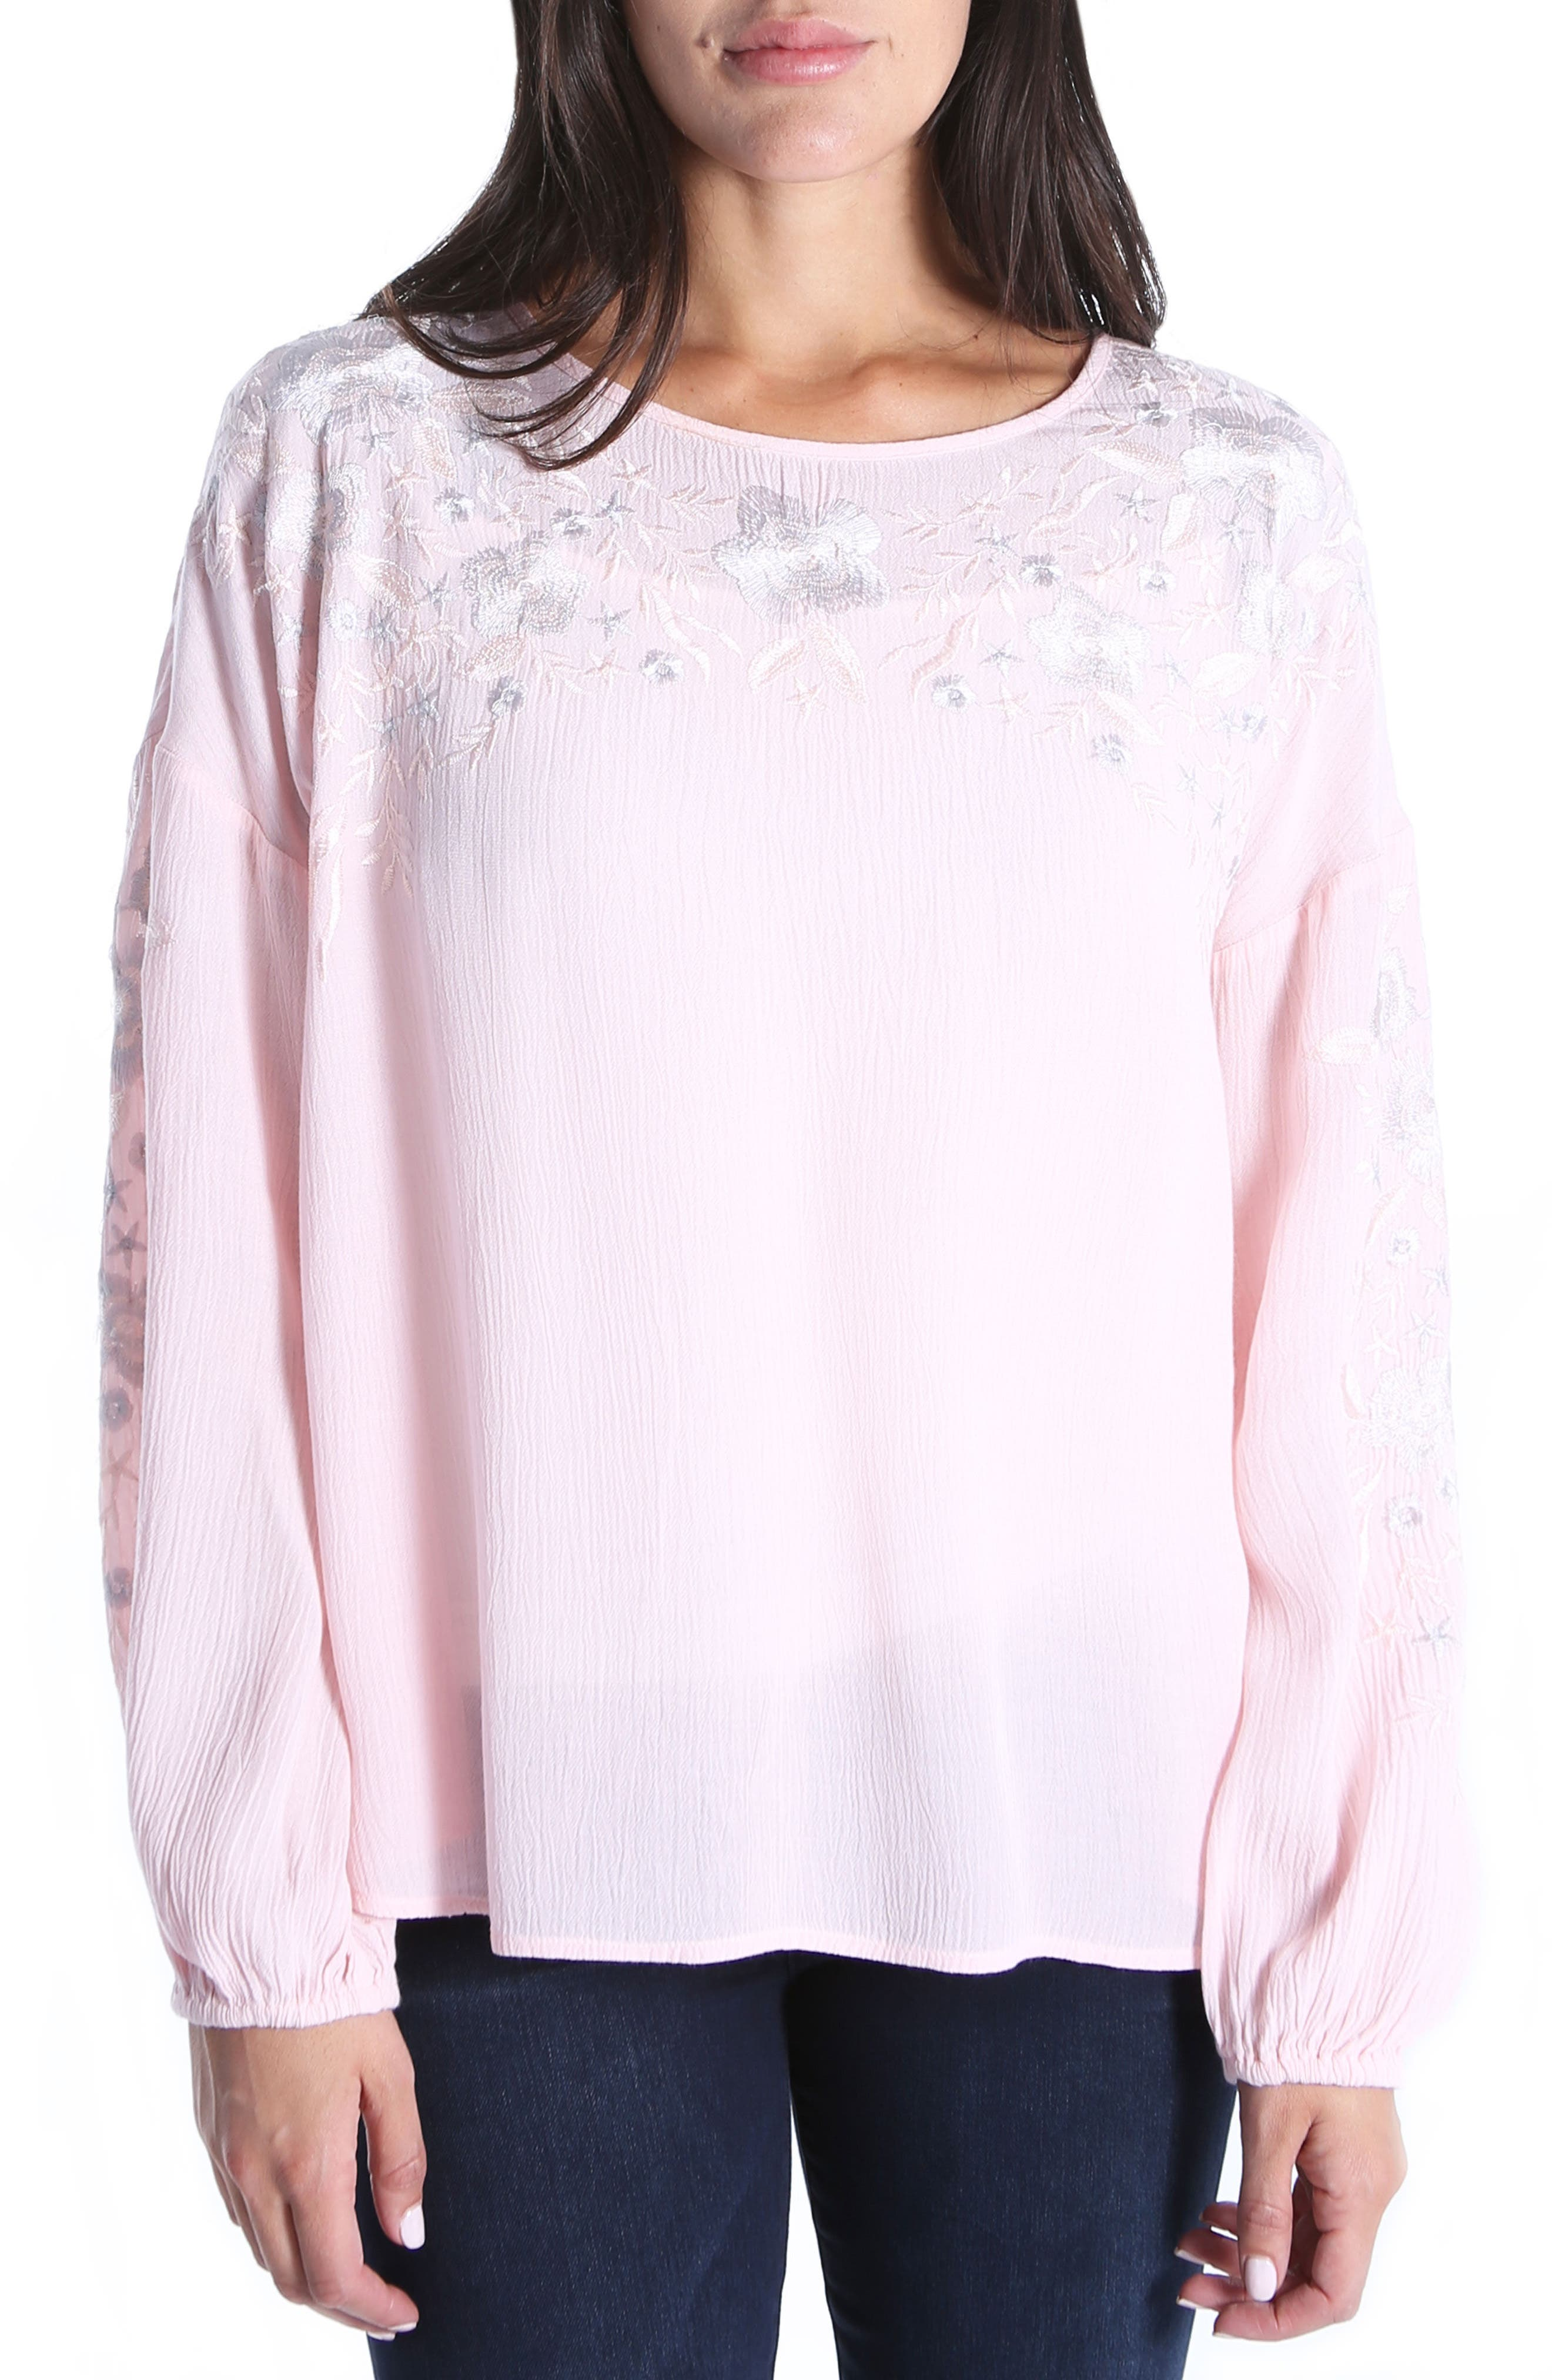 Ailiana Embroidered Blouse,                             Main thumbnail 1, color,                             Pink Bloom